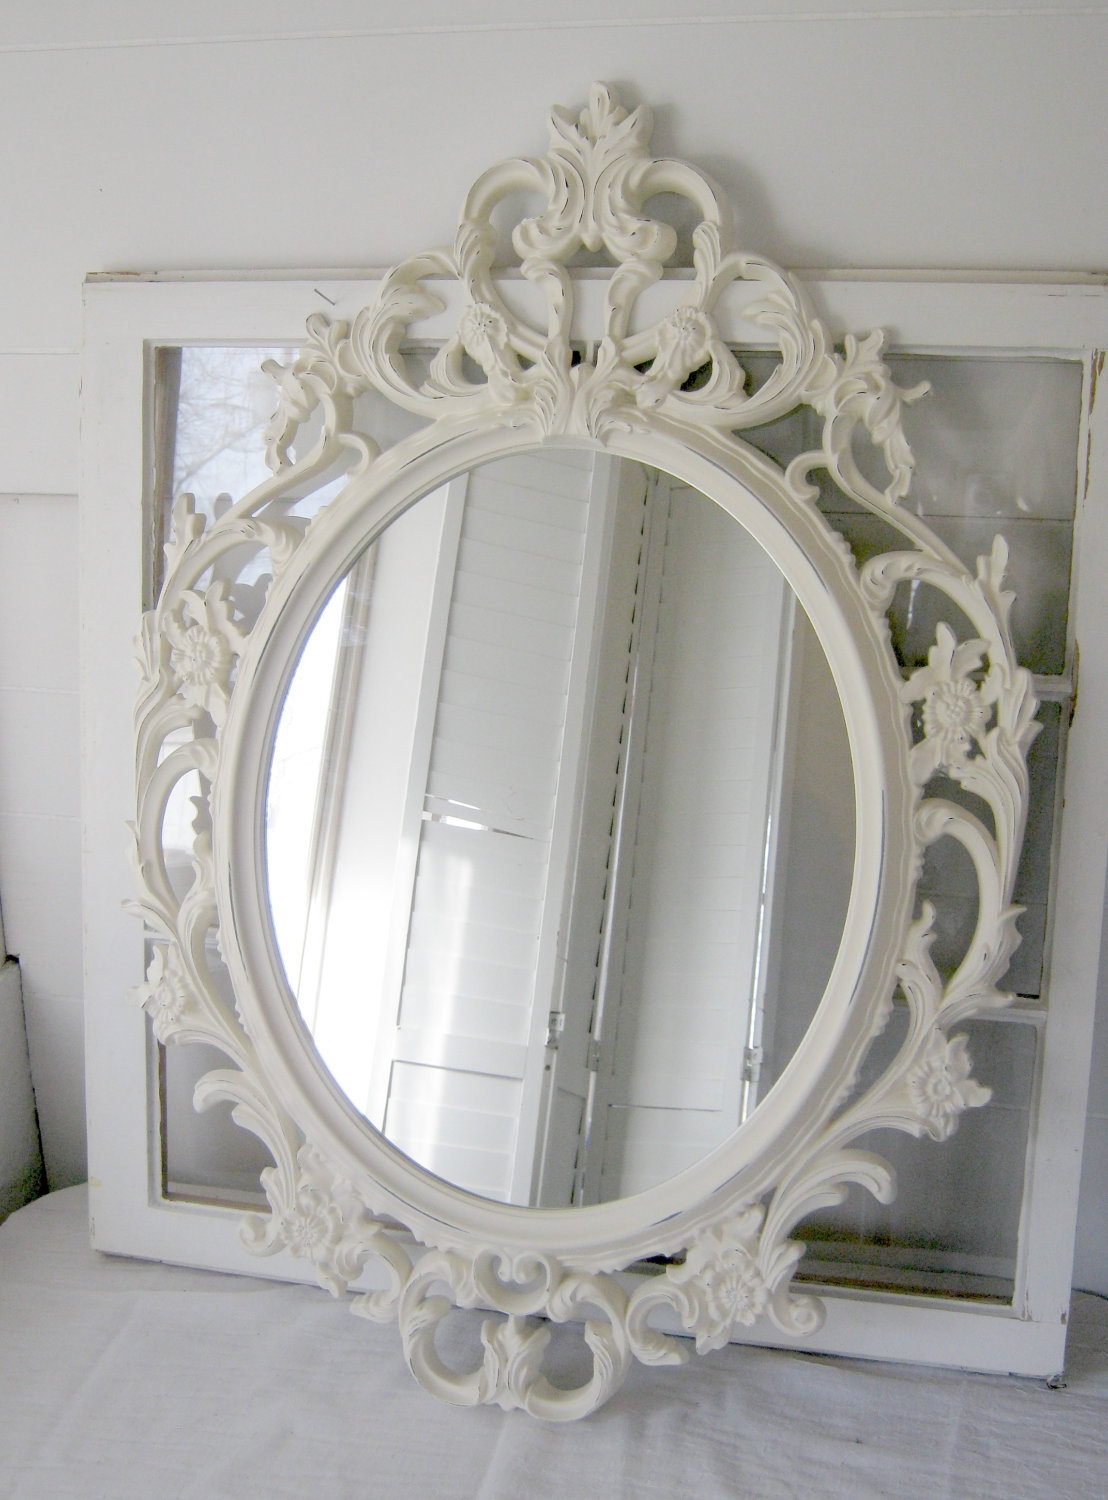 Shab Chic Baroque Oval Mirror Antique White Ornate Mirror In White Oval Mirrors (Image 10 of 15)